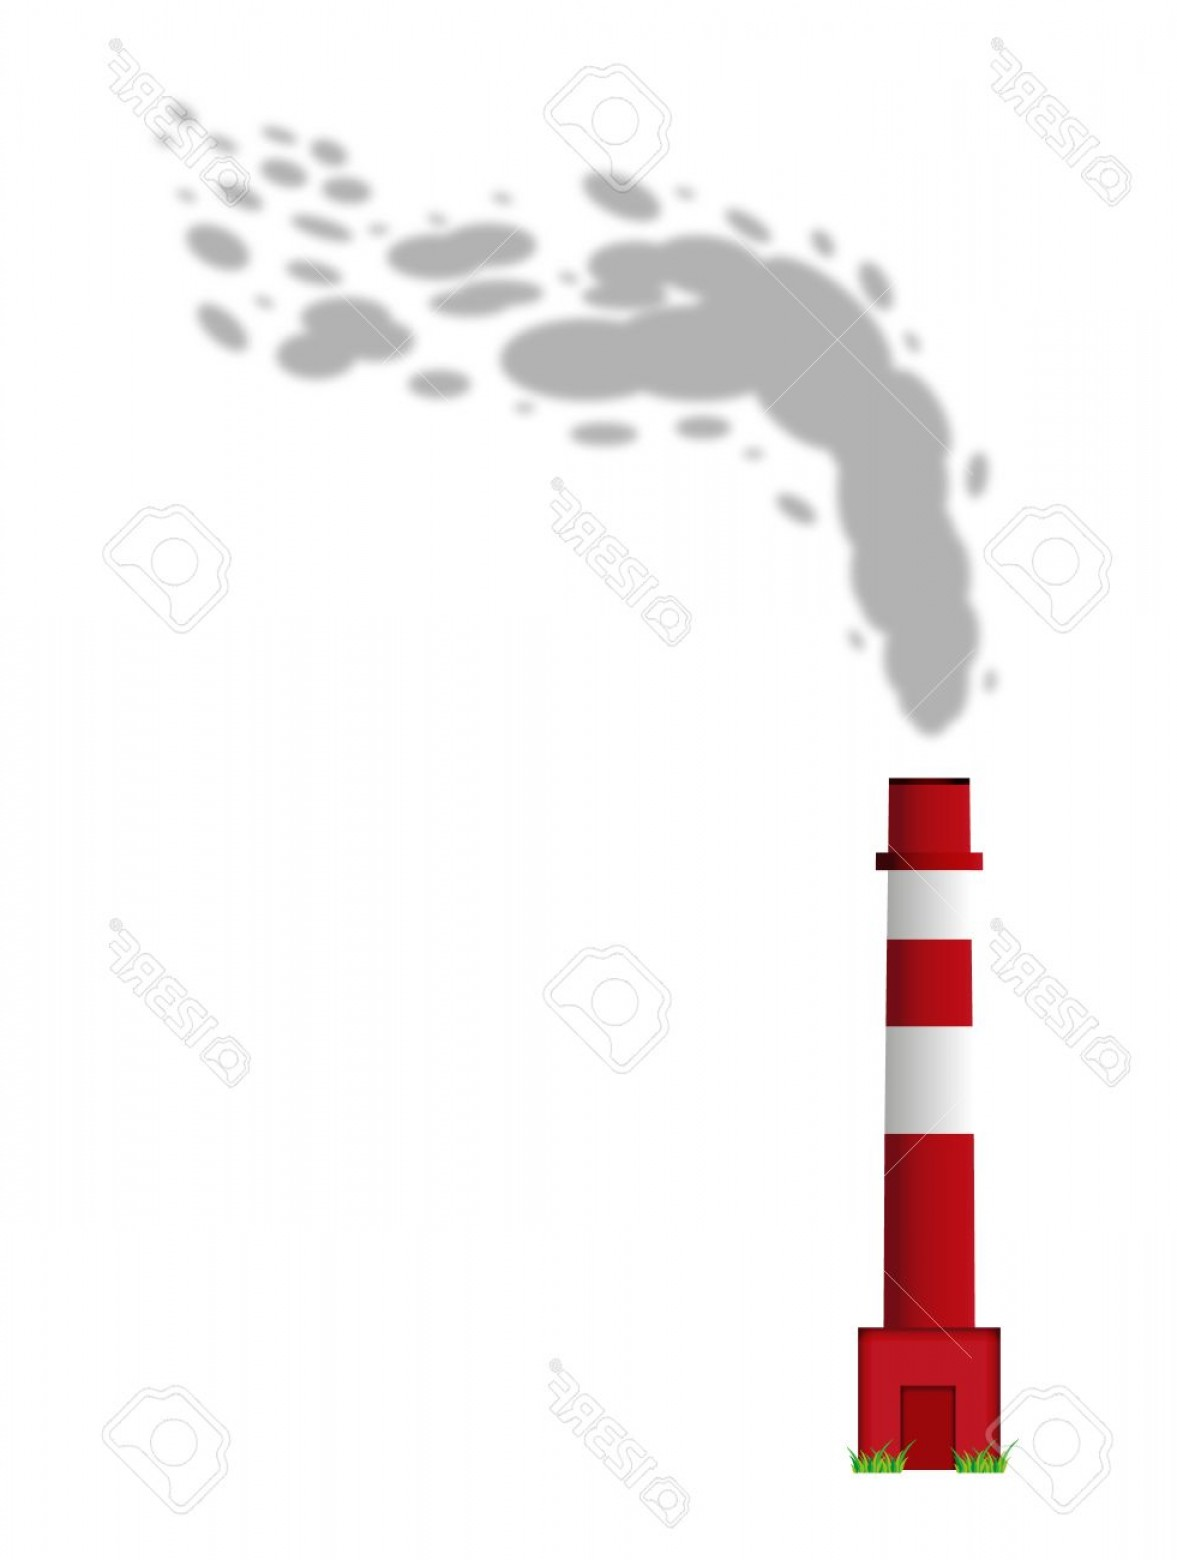 Vector Smokestack: Photochimney With Red And White Color And Gray Smoke On White Background